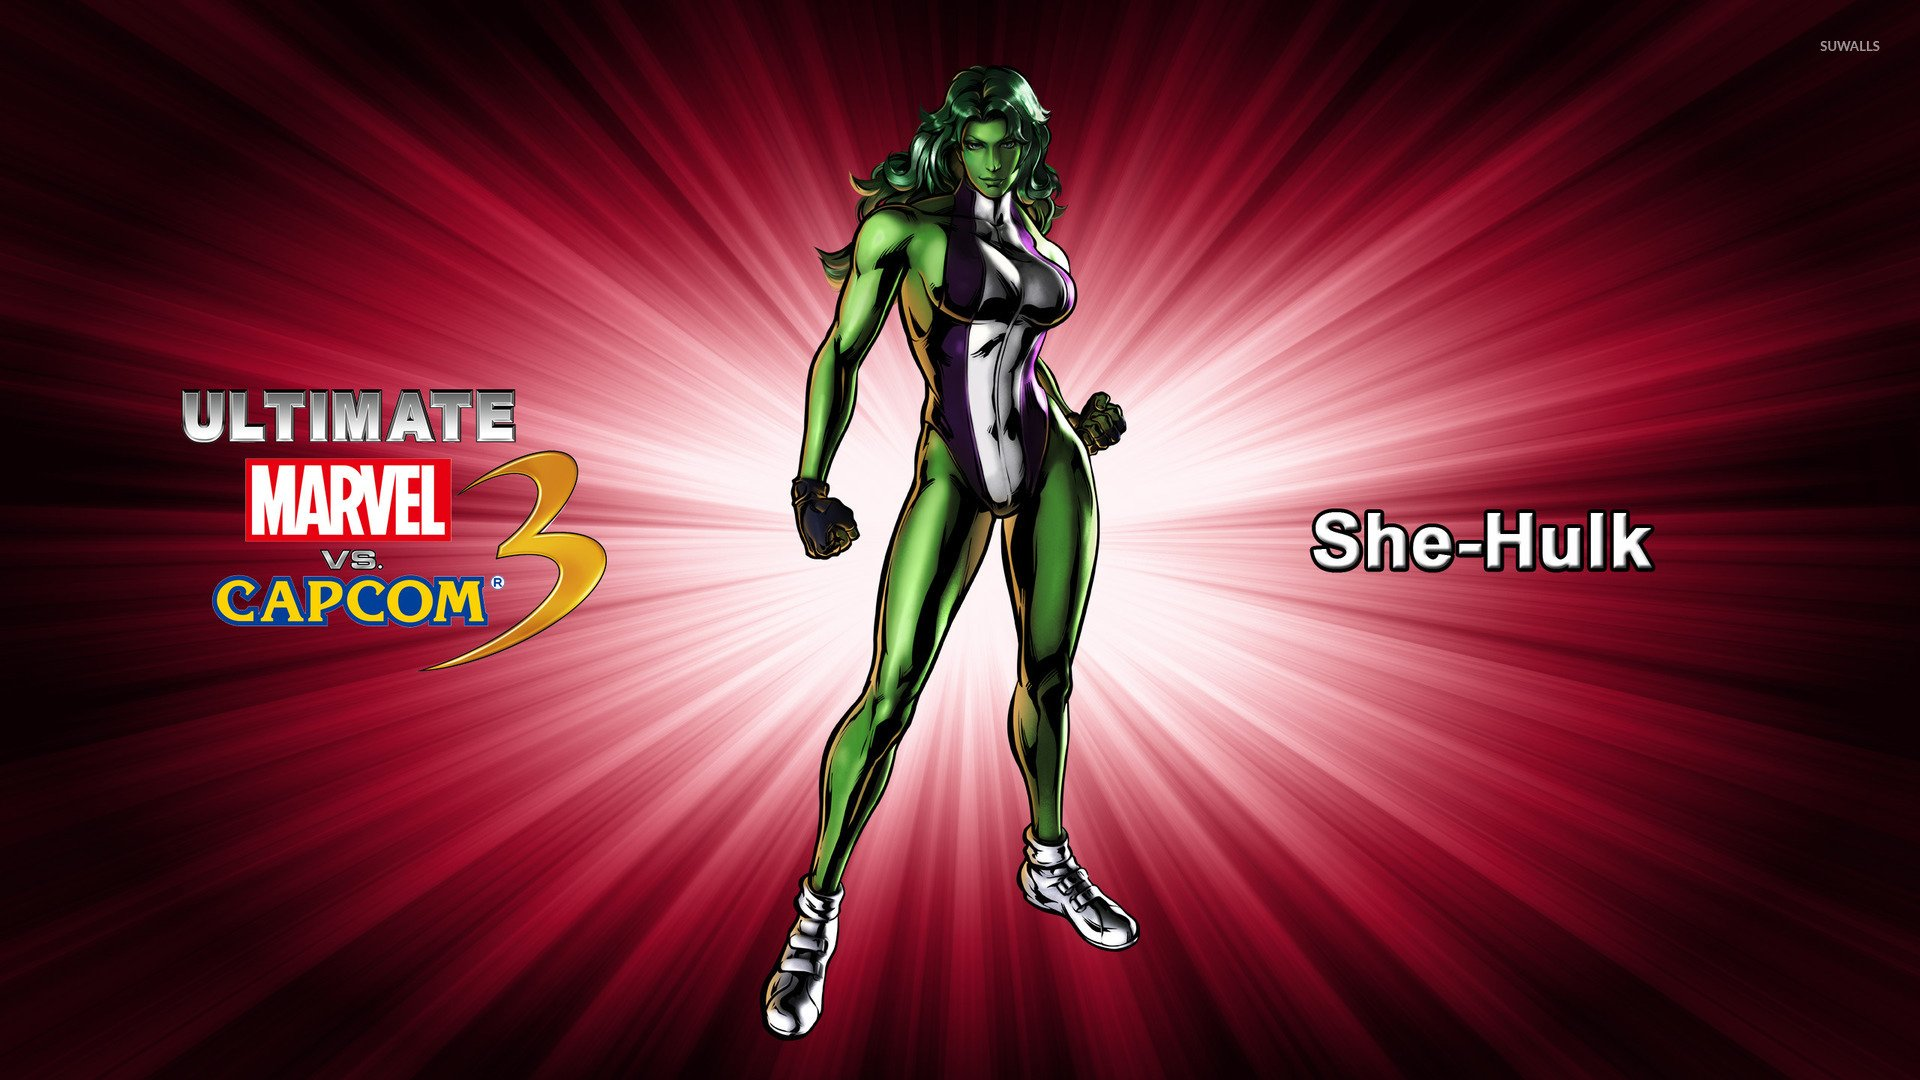 She Hulk   Ultimate Marvel vs Capcom 3 wallpaper   Game 1920x1080